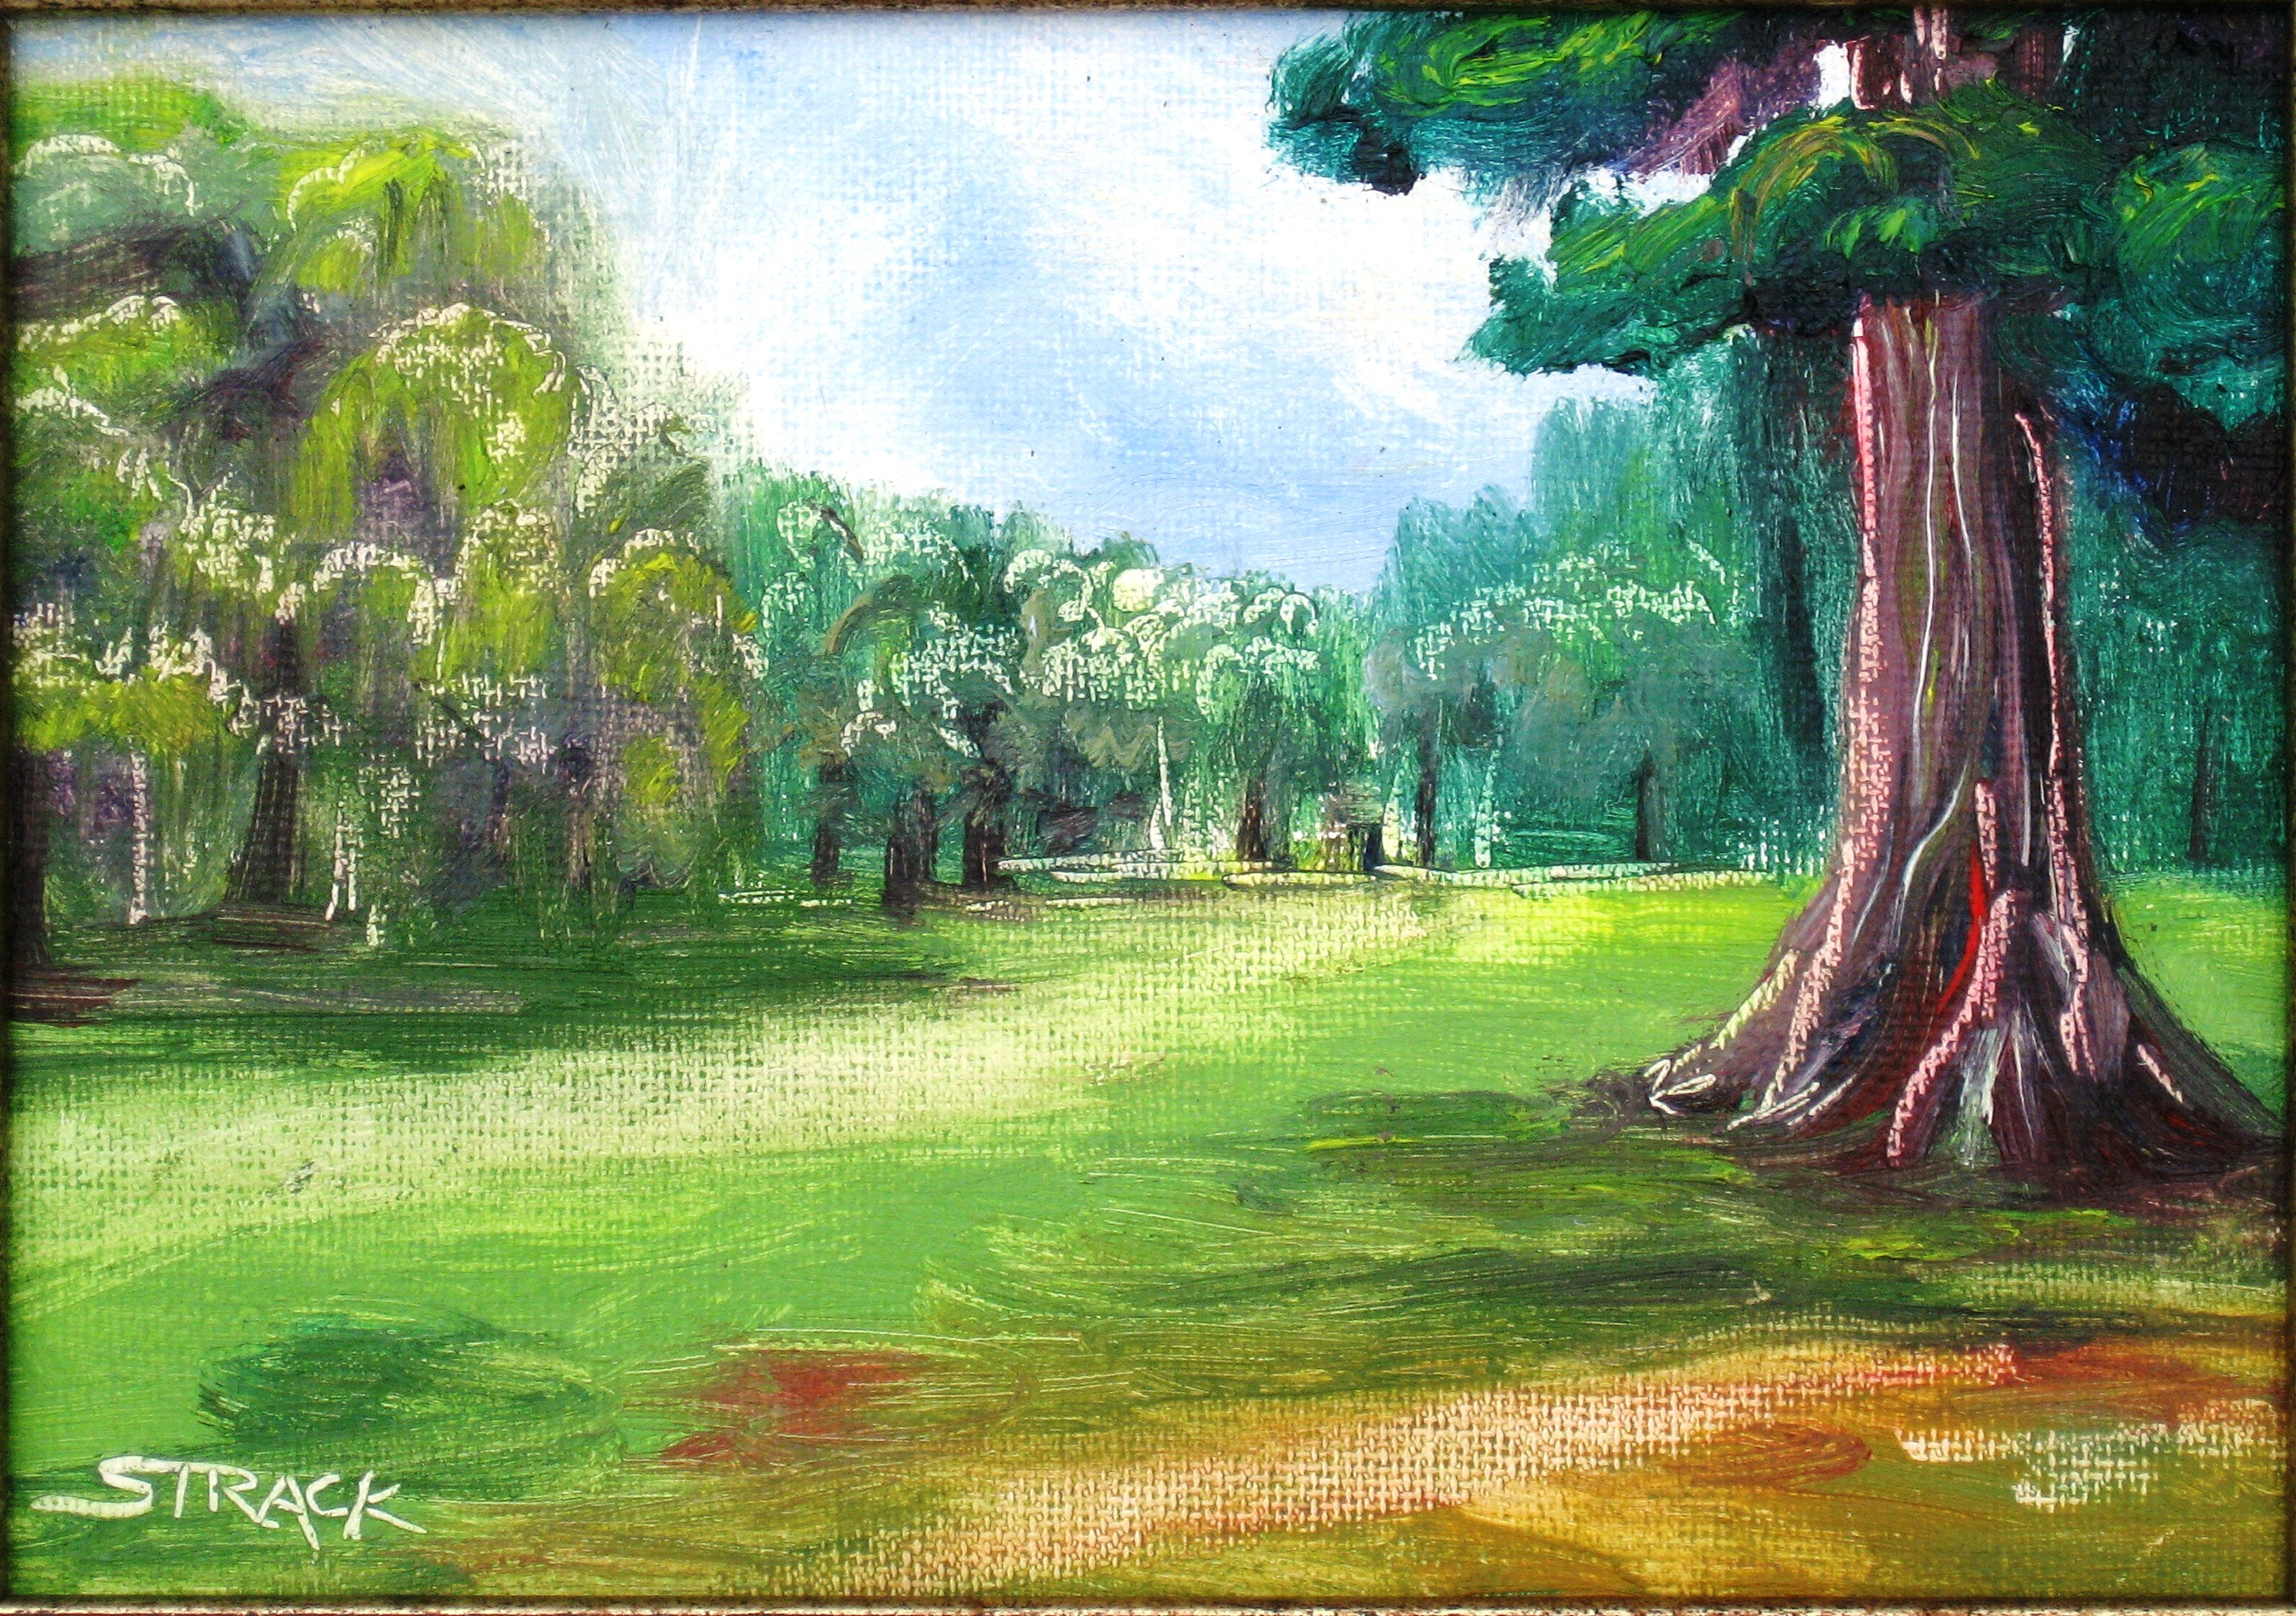 Everhardt Park by Annie Strack, oil